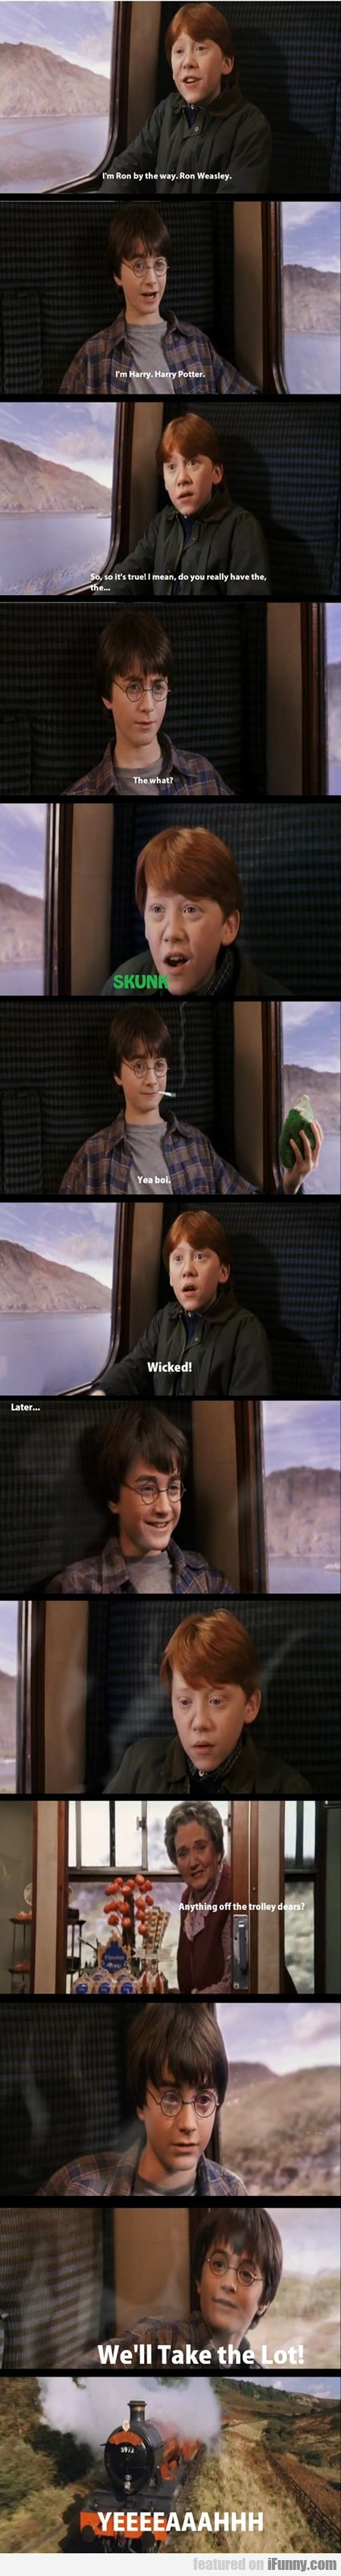 i'm ron by the way. ron weasley.